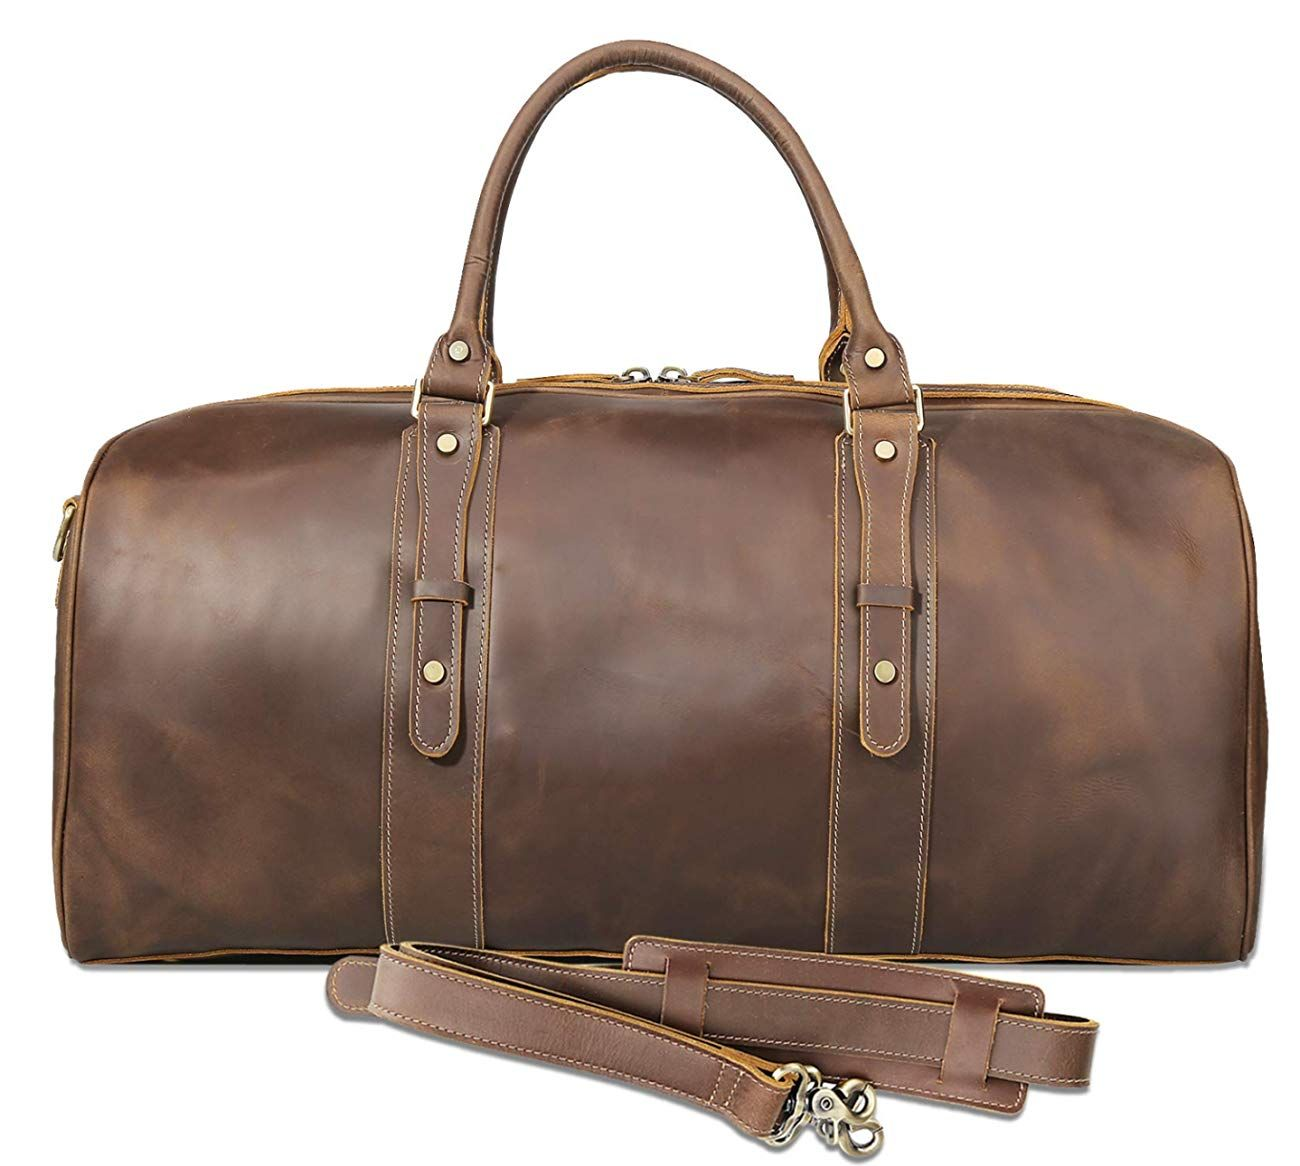 Texbo Mens Full Grain Cowhide Leather Large Overnight Travel Duffle Bag Luggage 23